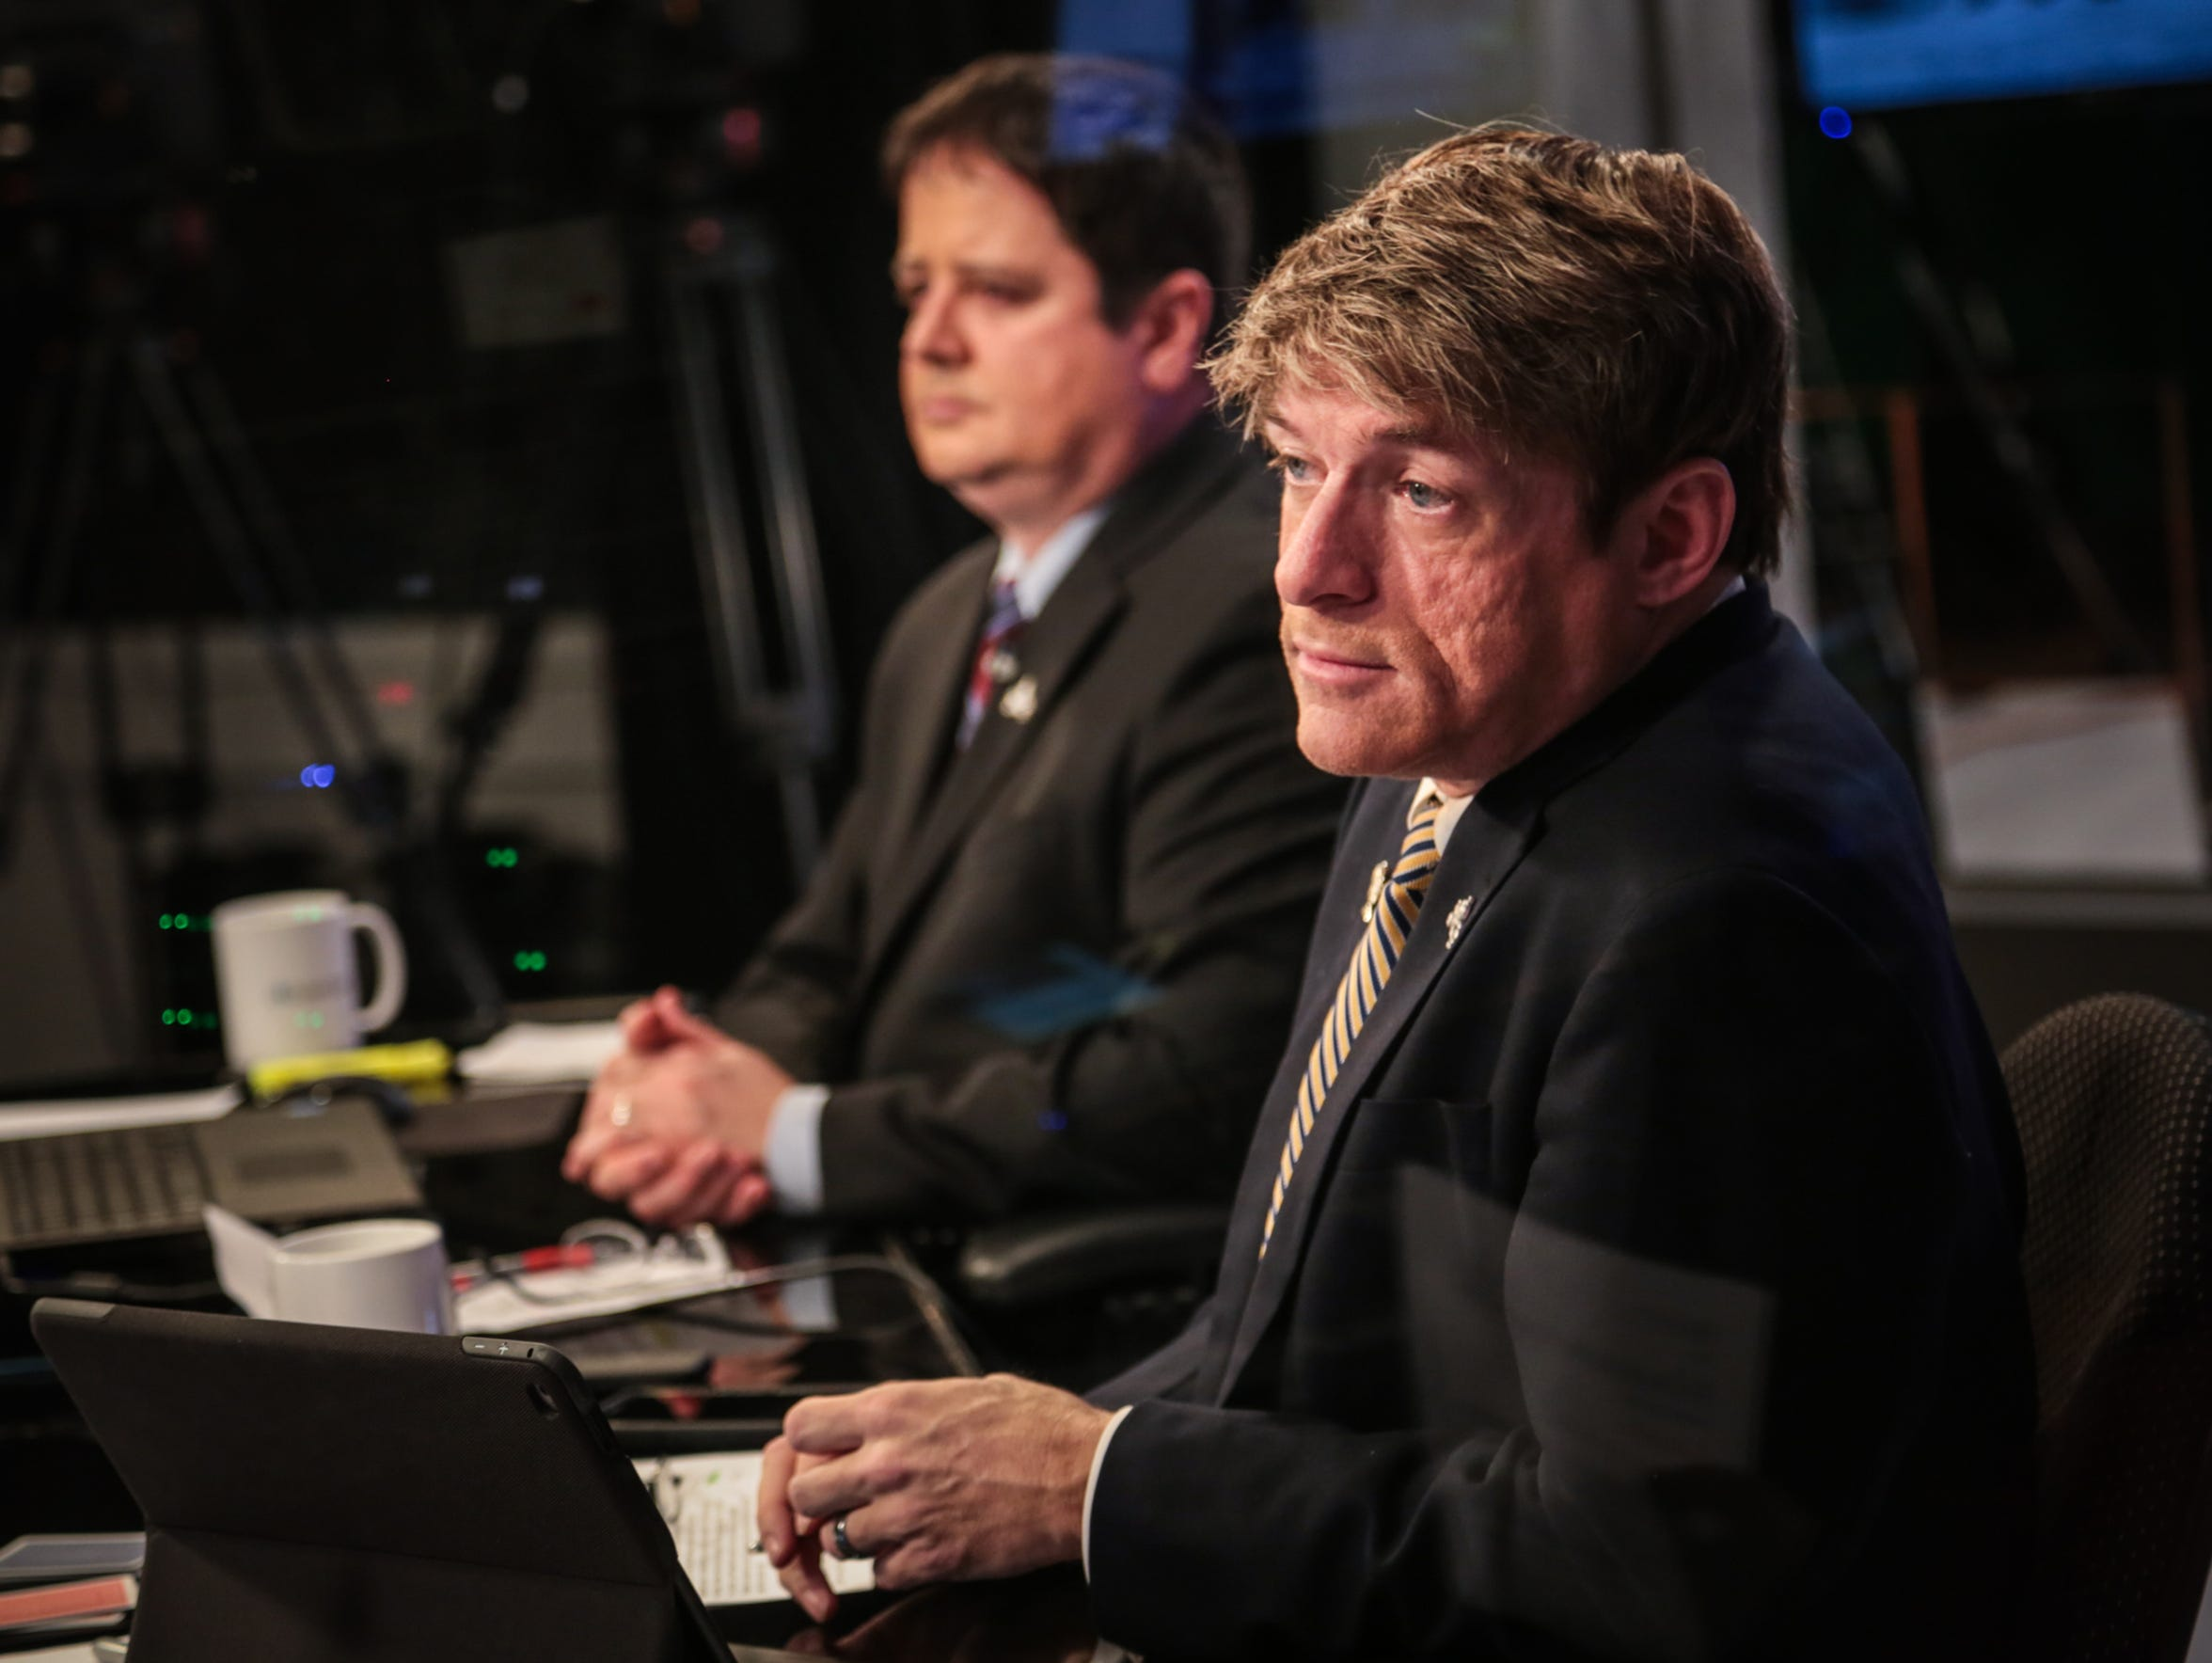 Panelists Bradley Eli, left, and Michael Voris watch